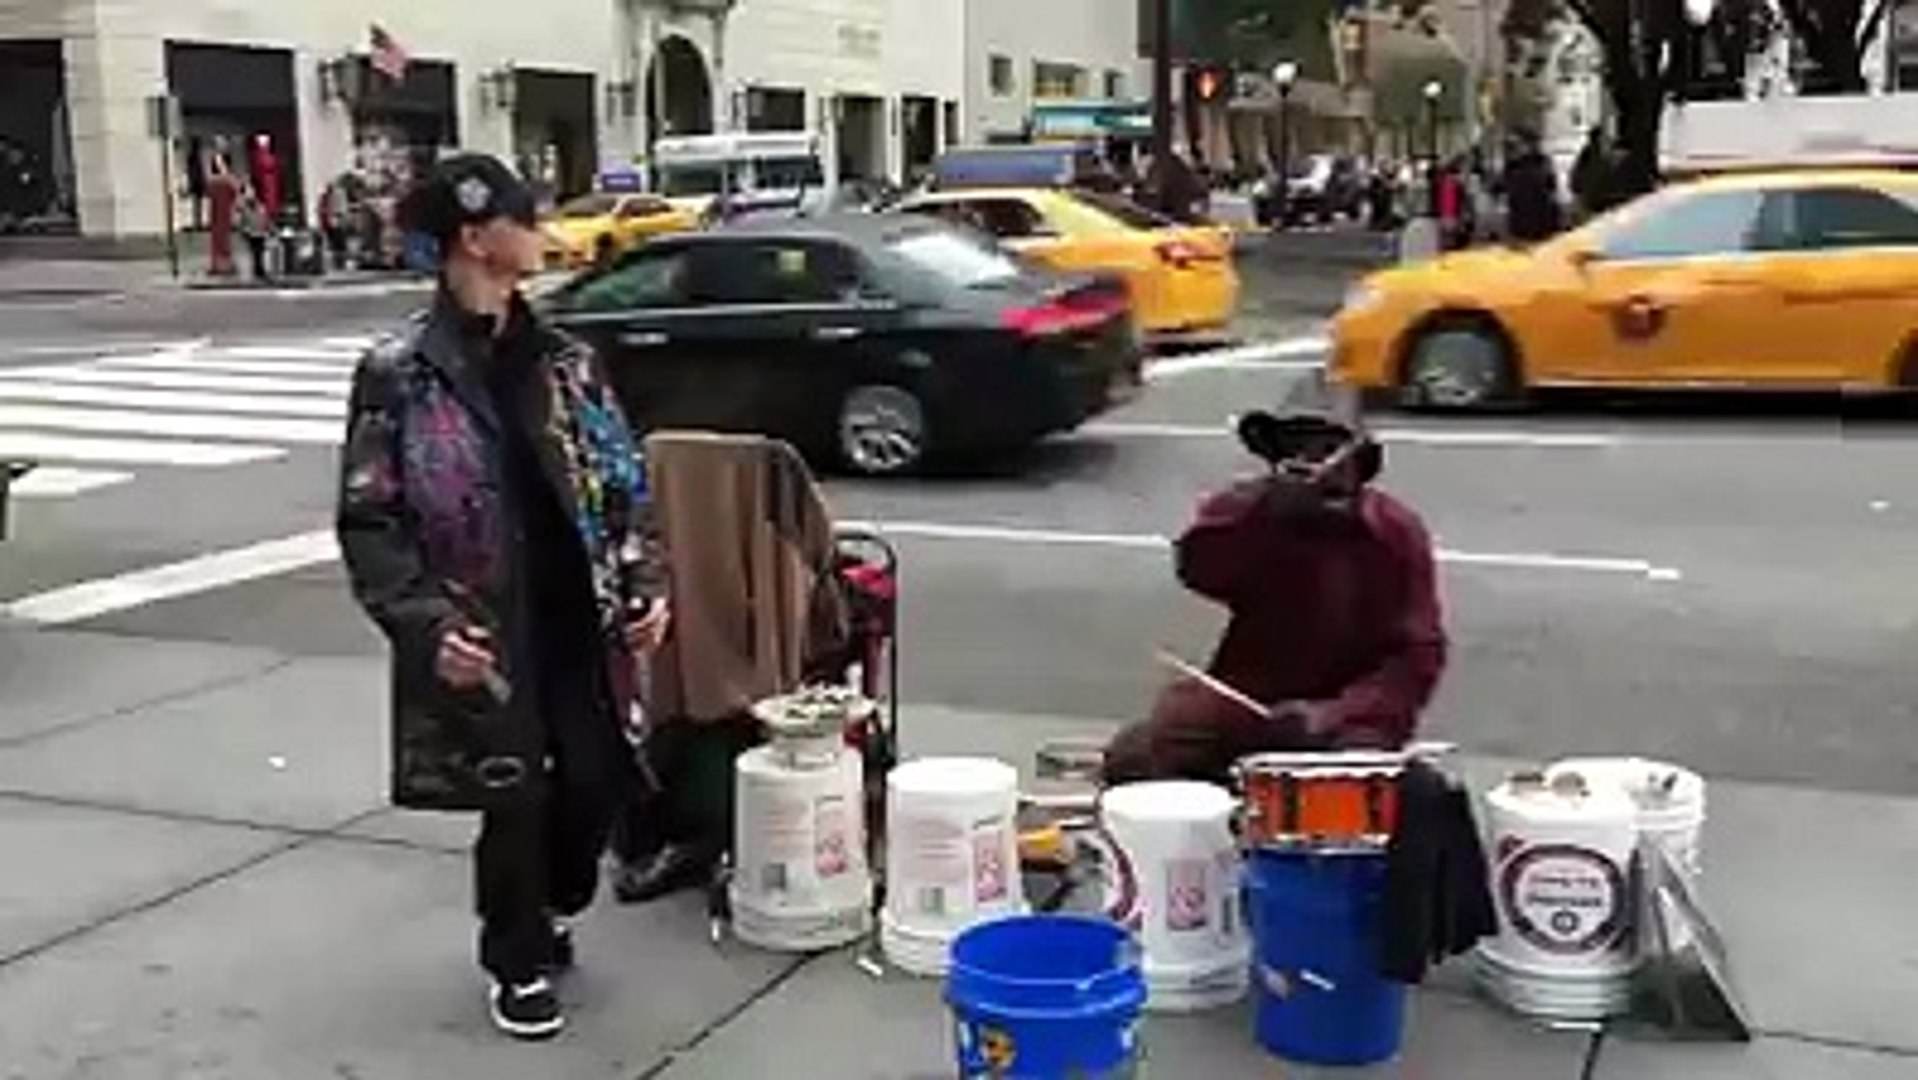 Crazy Dancing to a Street Musician in NYC !! So Cool